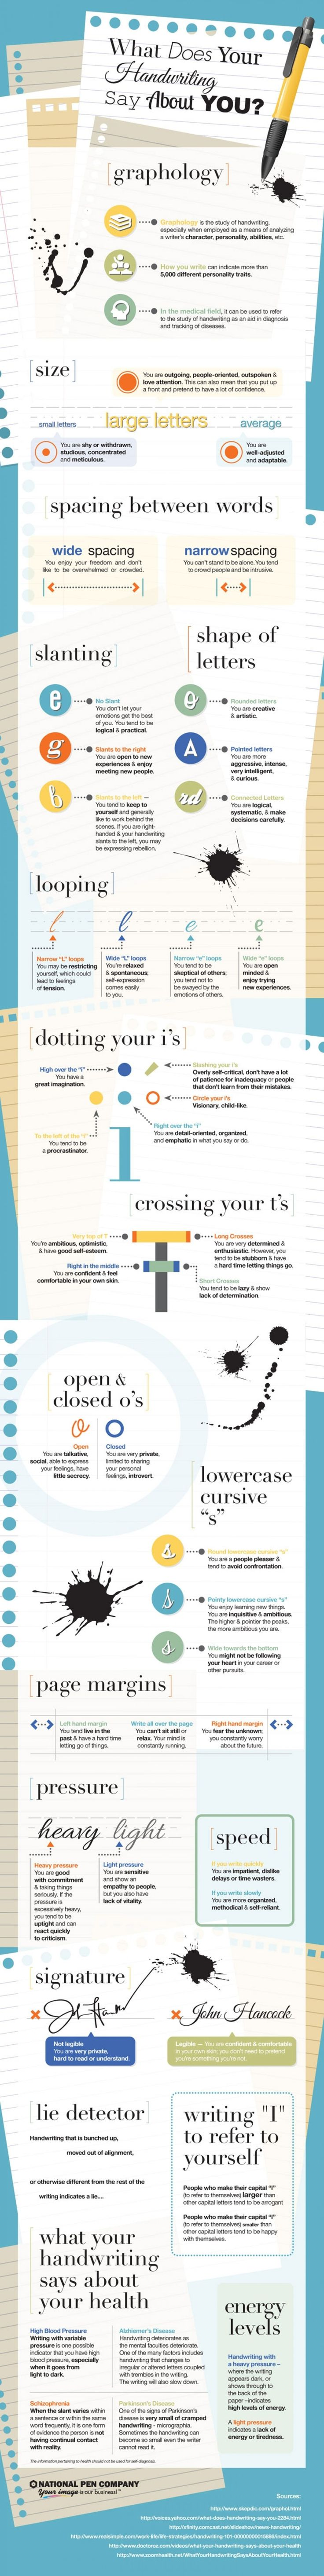 What Does Your Handwriting Say About You? Infographic